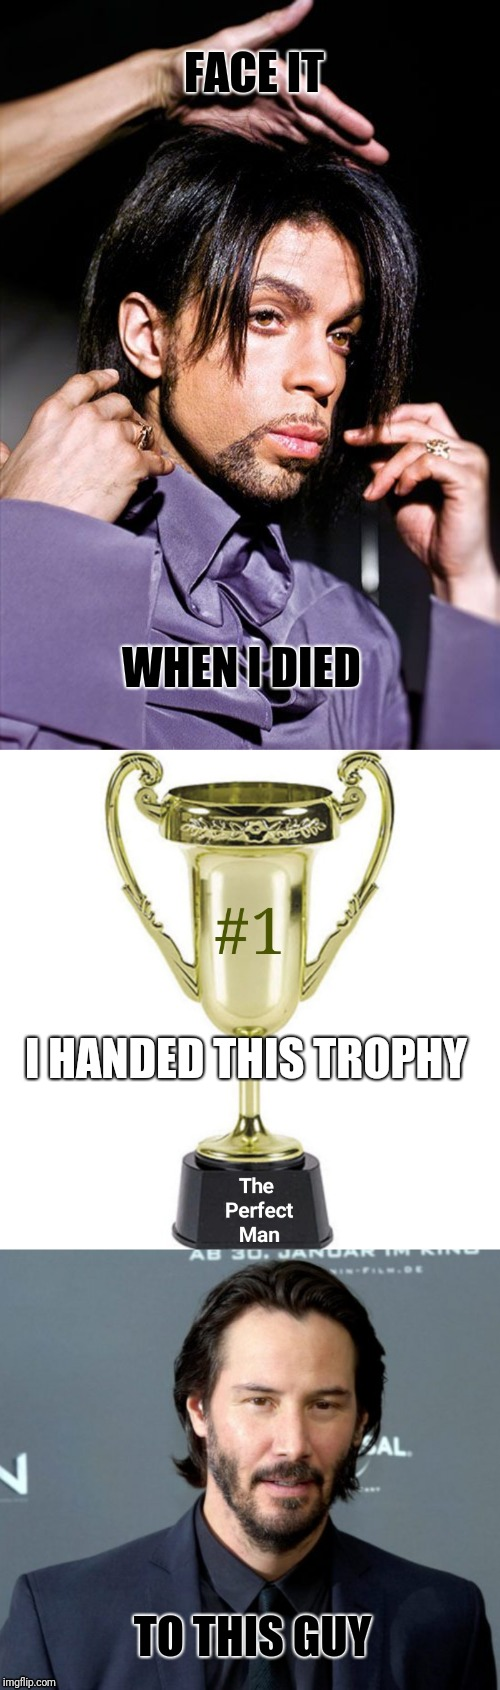 Who can deny? No one. |  FACE IT; WHEN I DIED; I HANDED THIS TROPHY; TO THIS GUY | image tagged in keanu reeves,prince,trophy,funny memes,true,facts | made w/ Imgflip meme maker